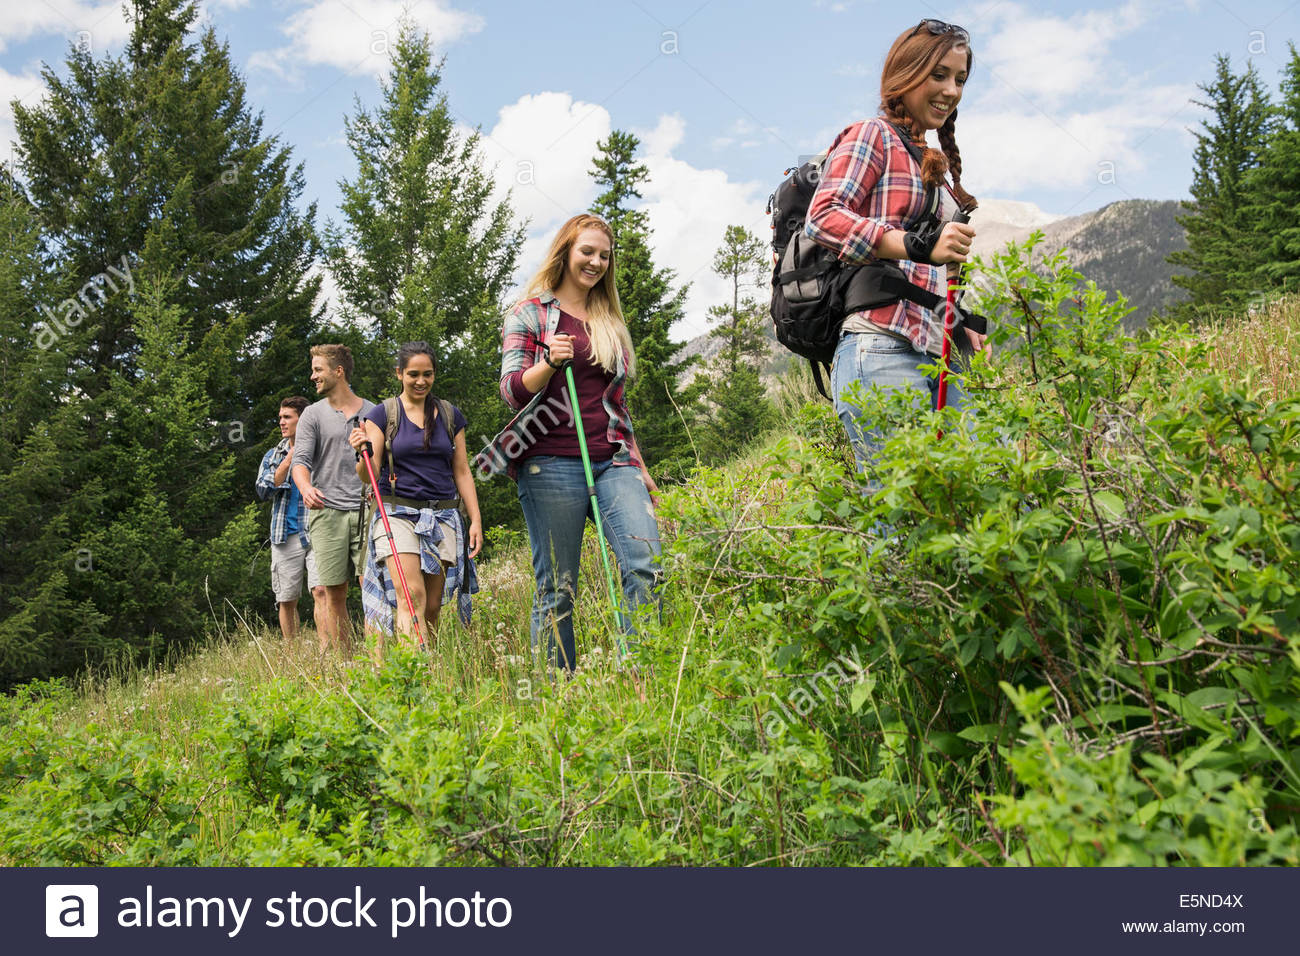 Friends hiking on trail - Stock Image